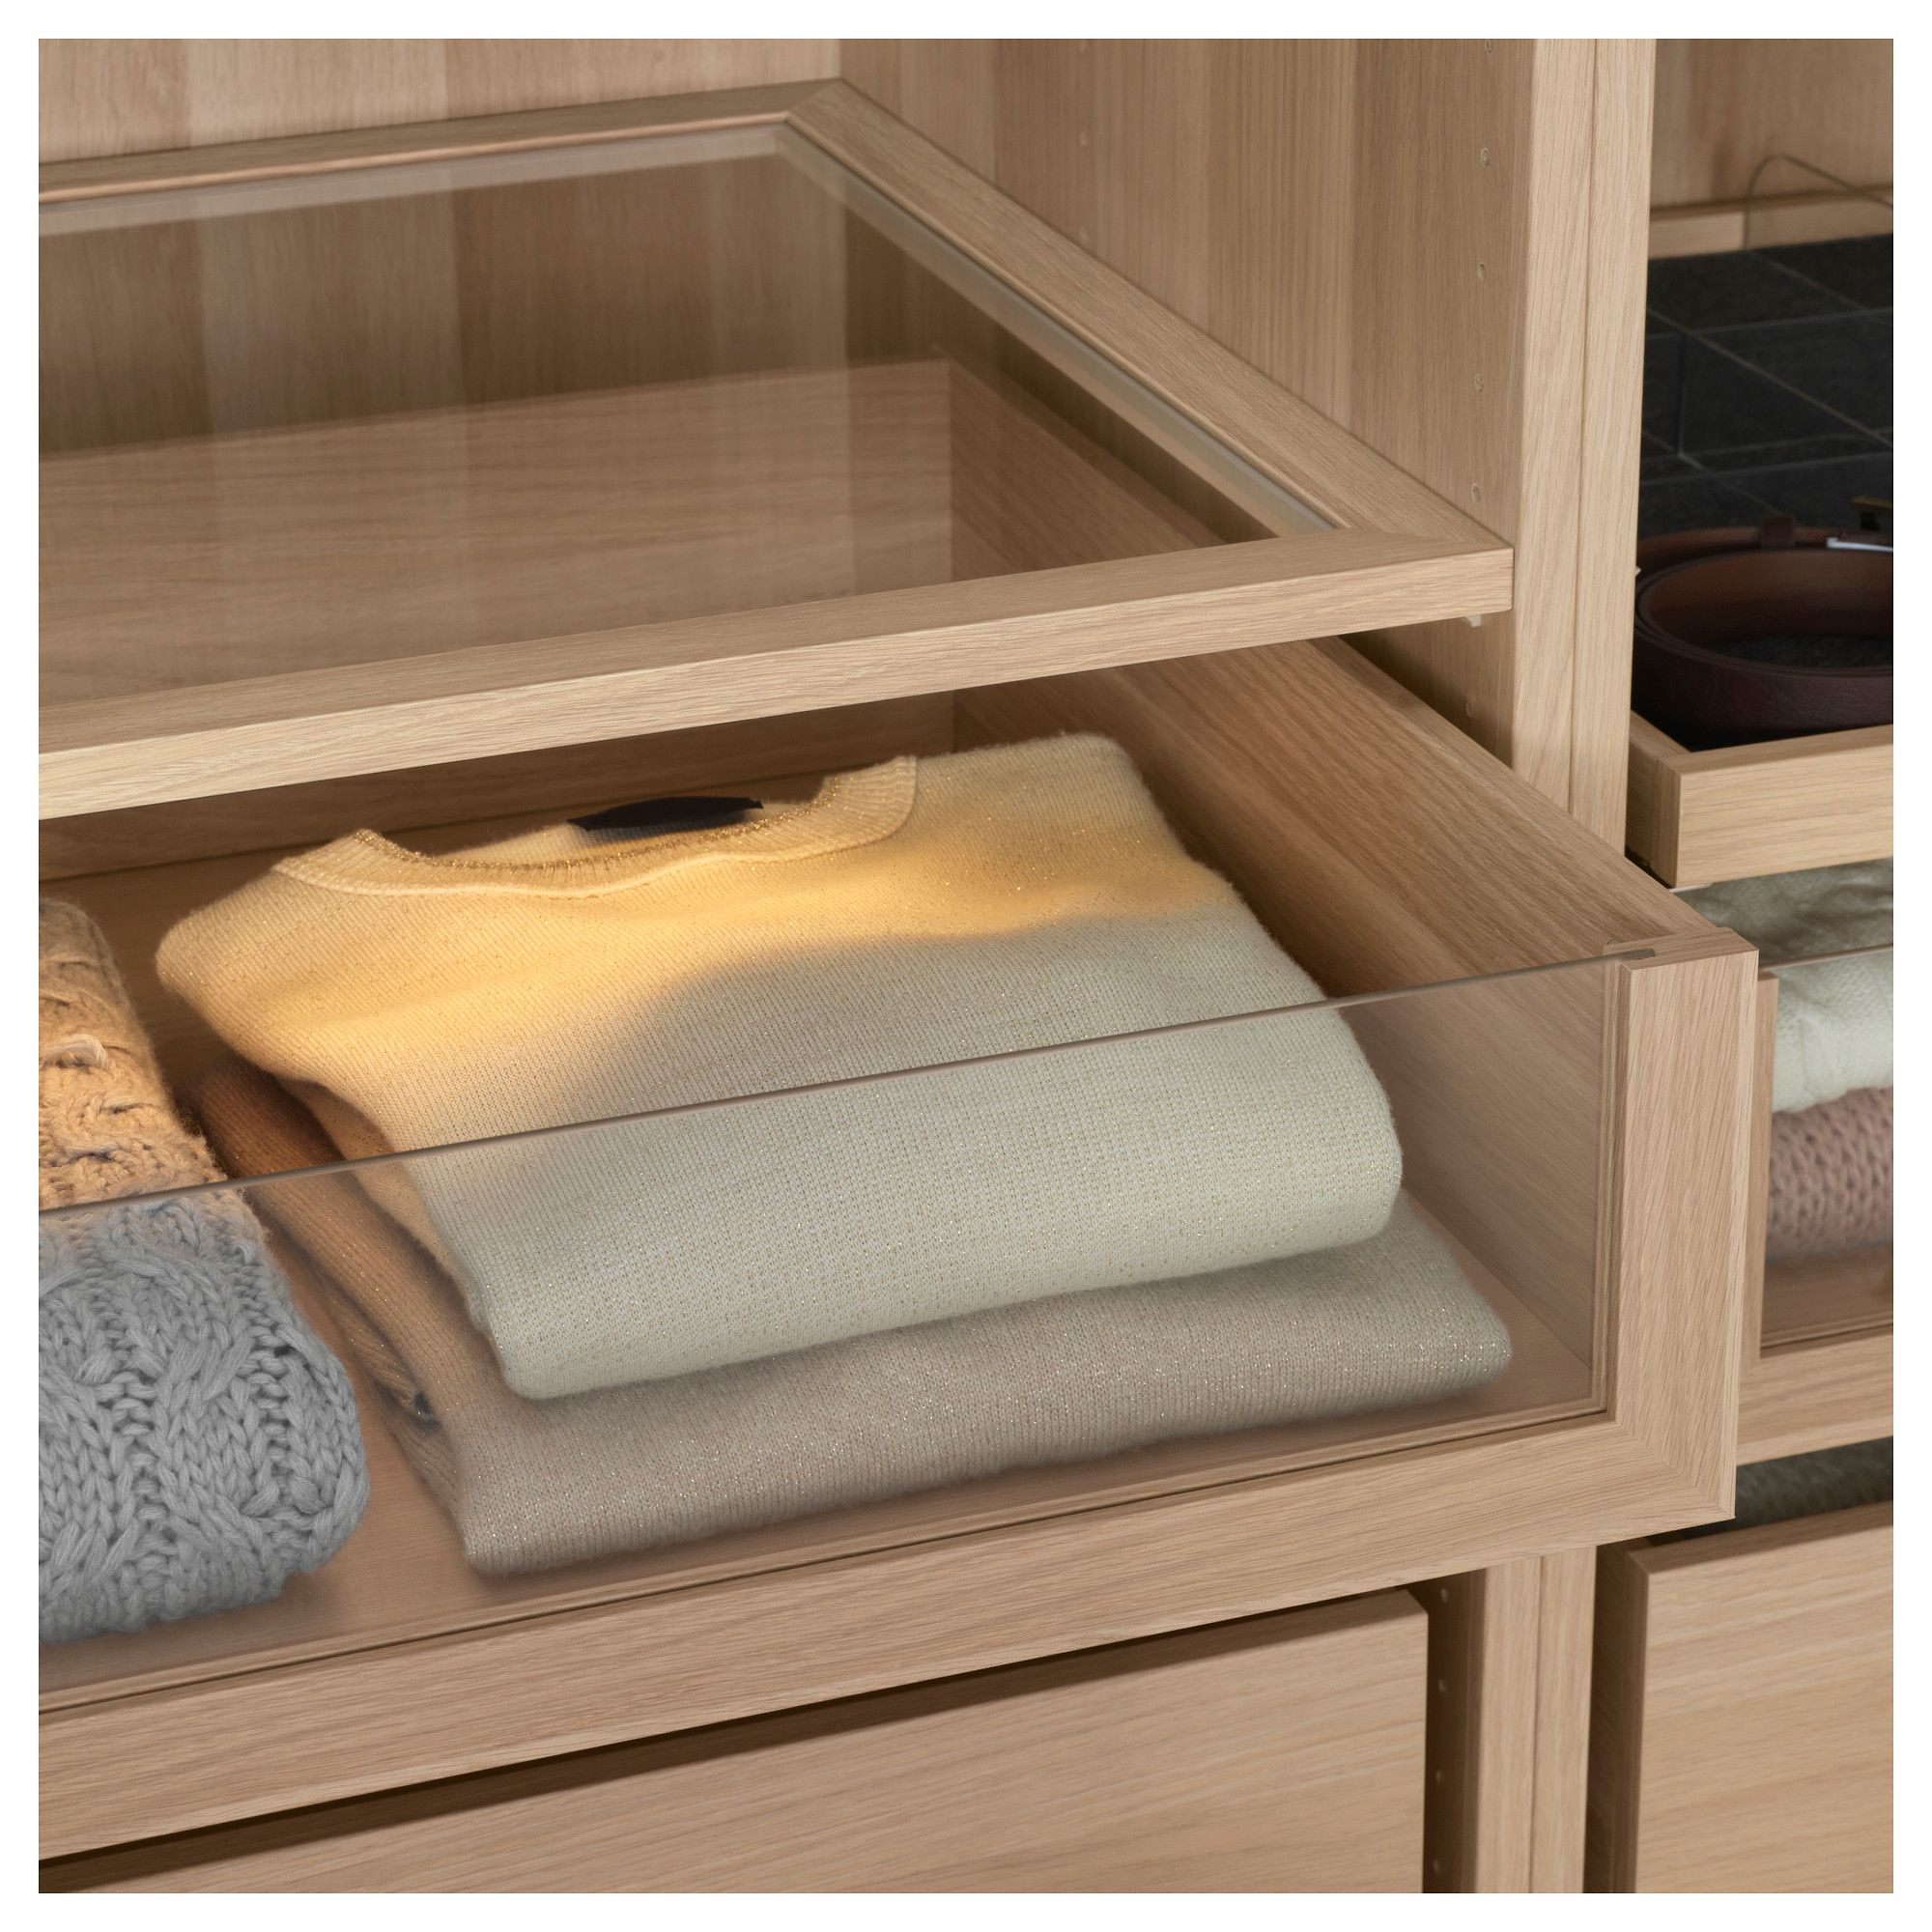 KOMPLEMENT Drawer With Glass Front White Stained Oak